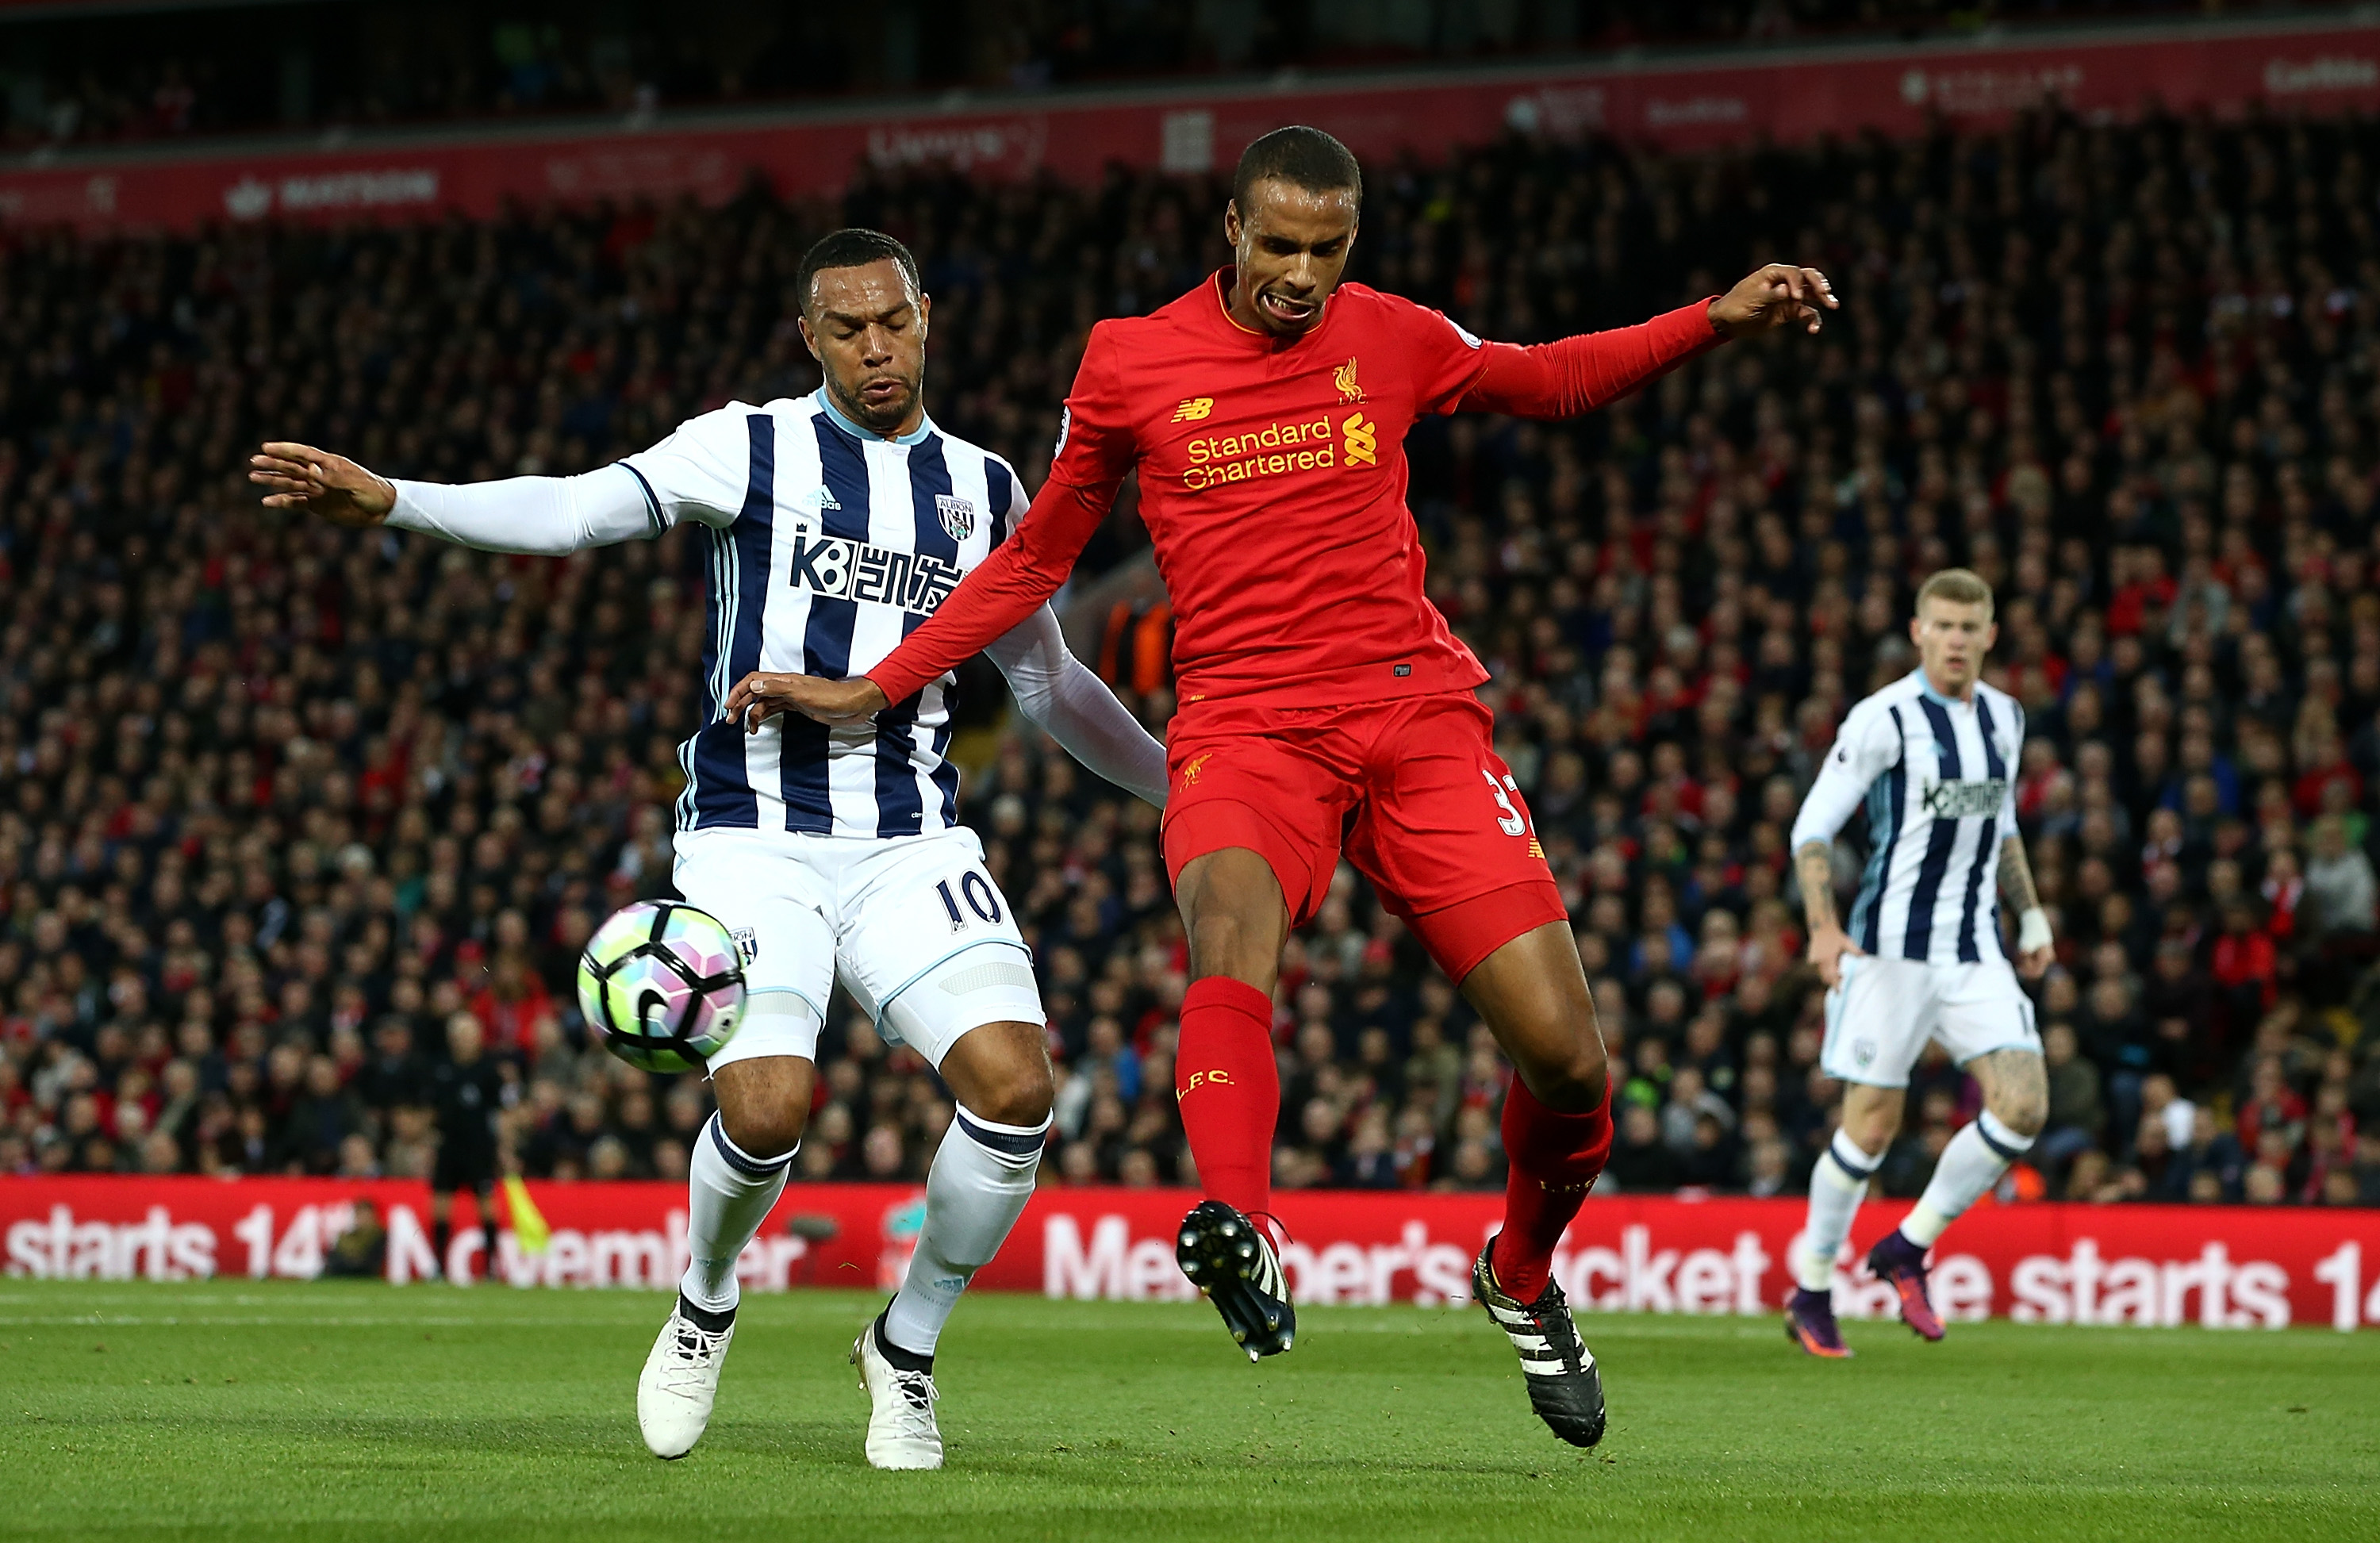 LIVERPOOL, ENGLAND - OCTOBER 22:  Joel Matip of Liverpool competes with Matt Phillips of West Bromwich Albion during the Premier League match between Liverpool and West Bromwich Albion at Anfield on October 22, 2016 in Liverpool, England.  (Photo by Jan Kruger/Getty Images)